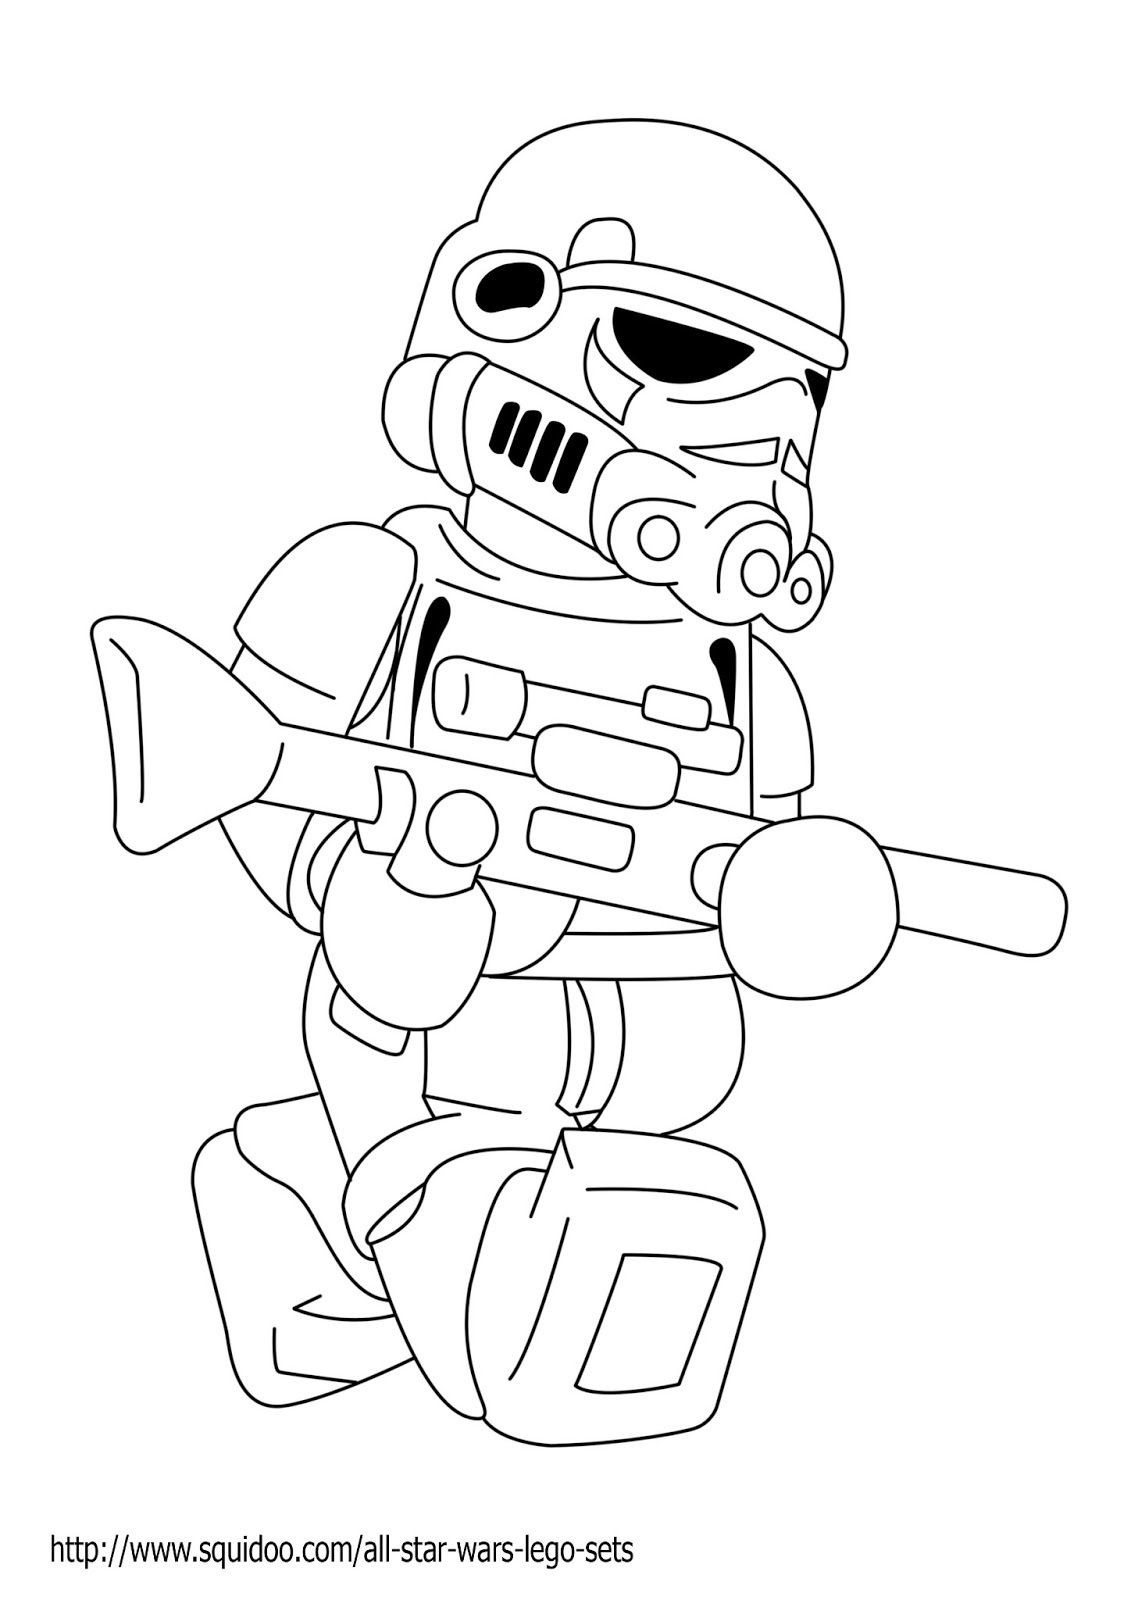 free star wars coloring pages coloring pages star wars page 1 printable coloring wars free star pages coloring